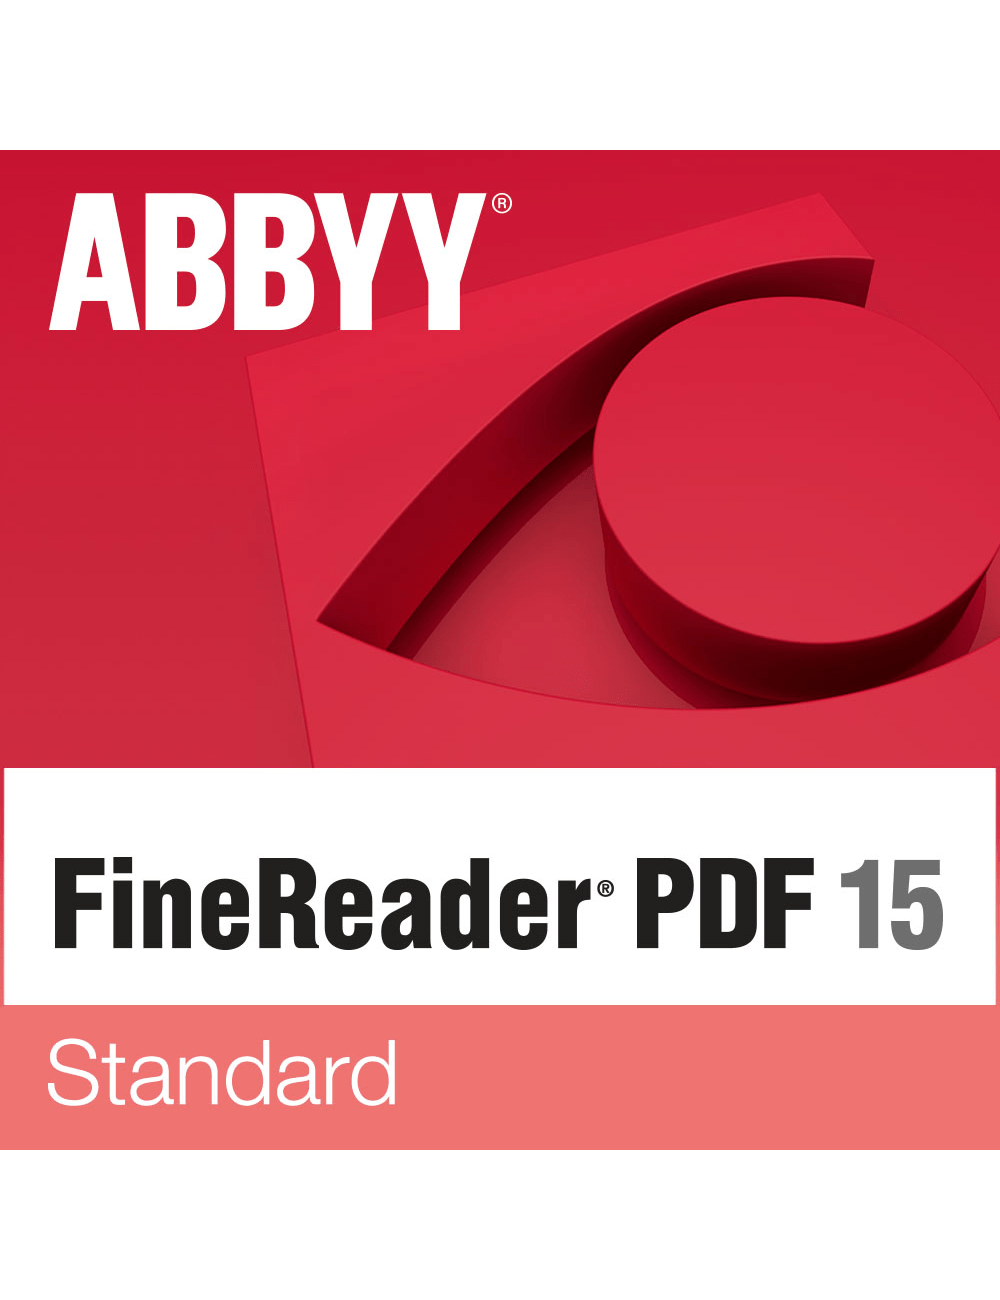 ABBYY FineReader PDF OCR Standard Buy Download